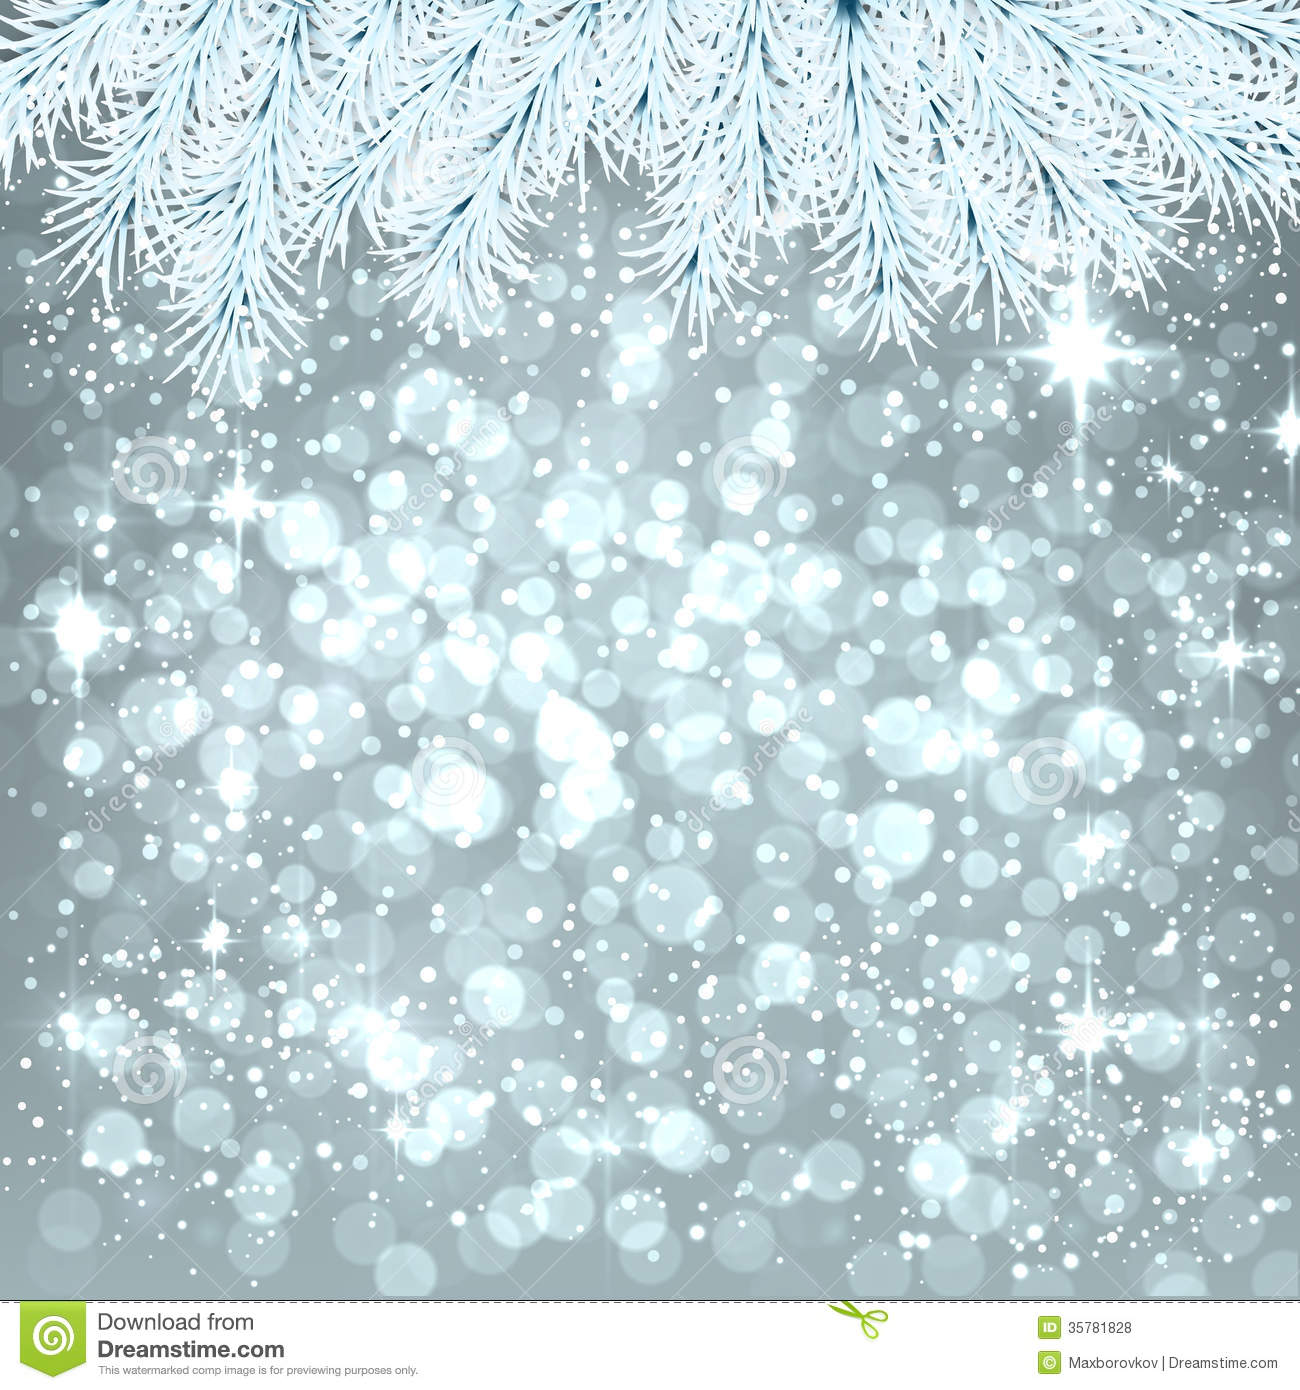 Wallpaper Off White Iphone X Christmas Silver Abstract Background Stock Vector